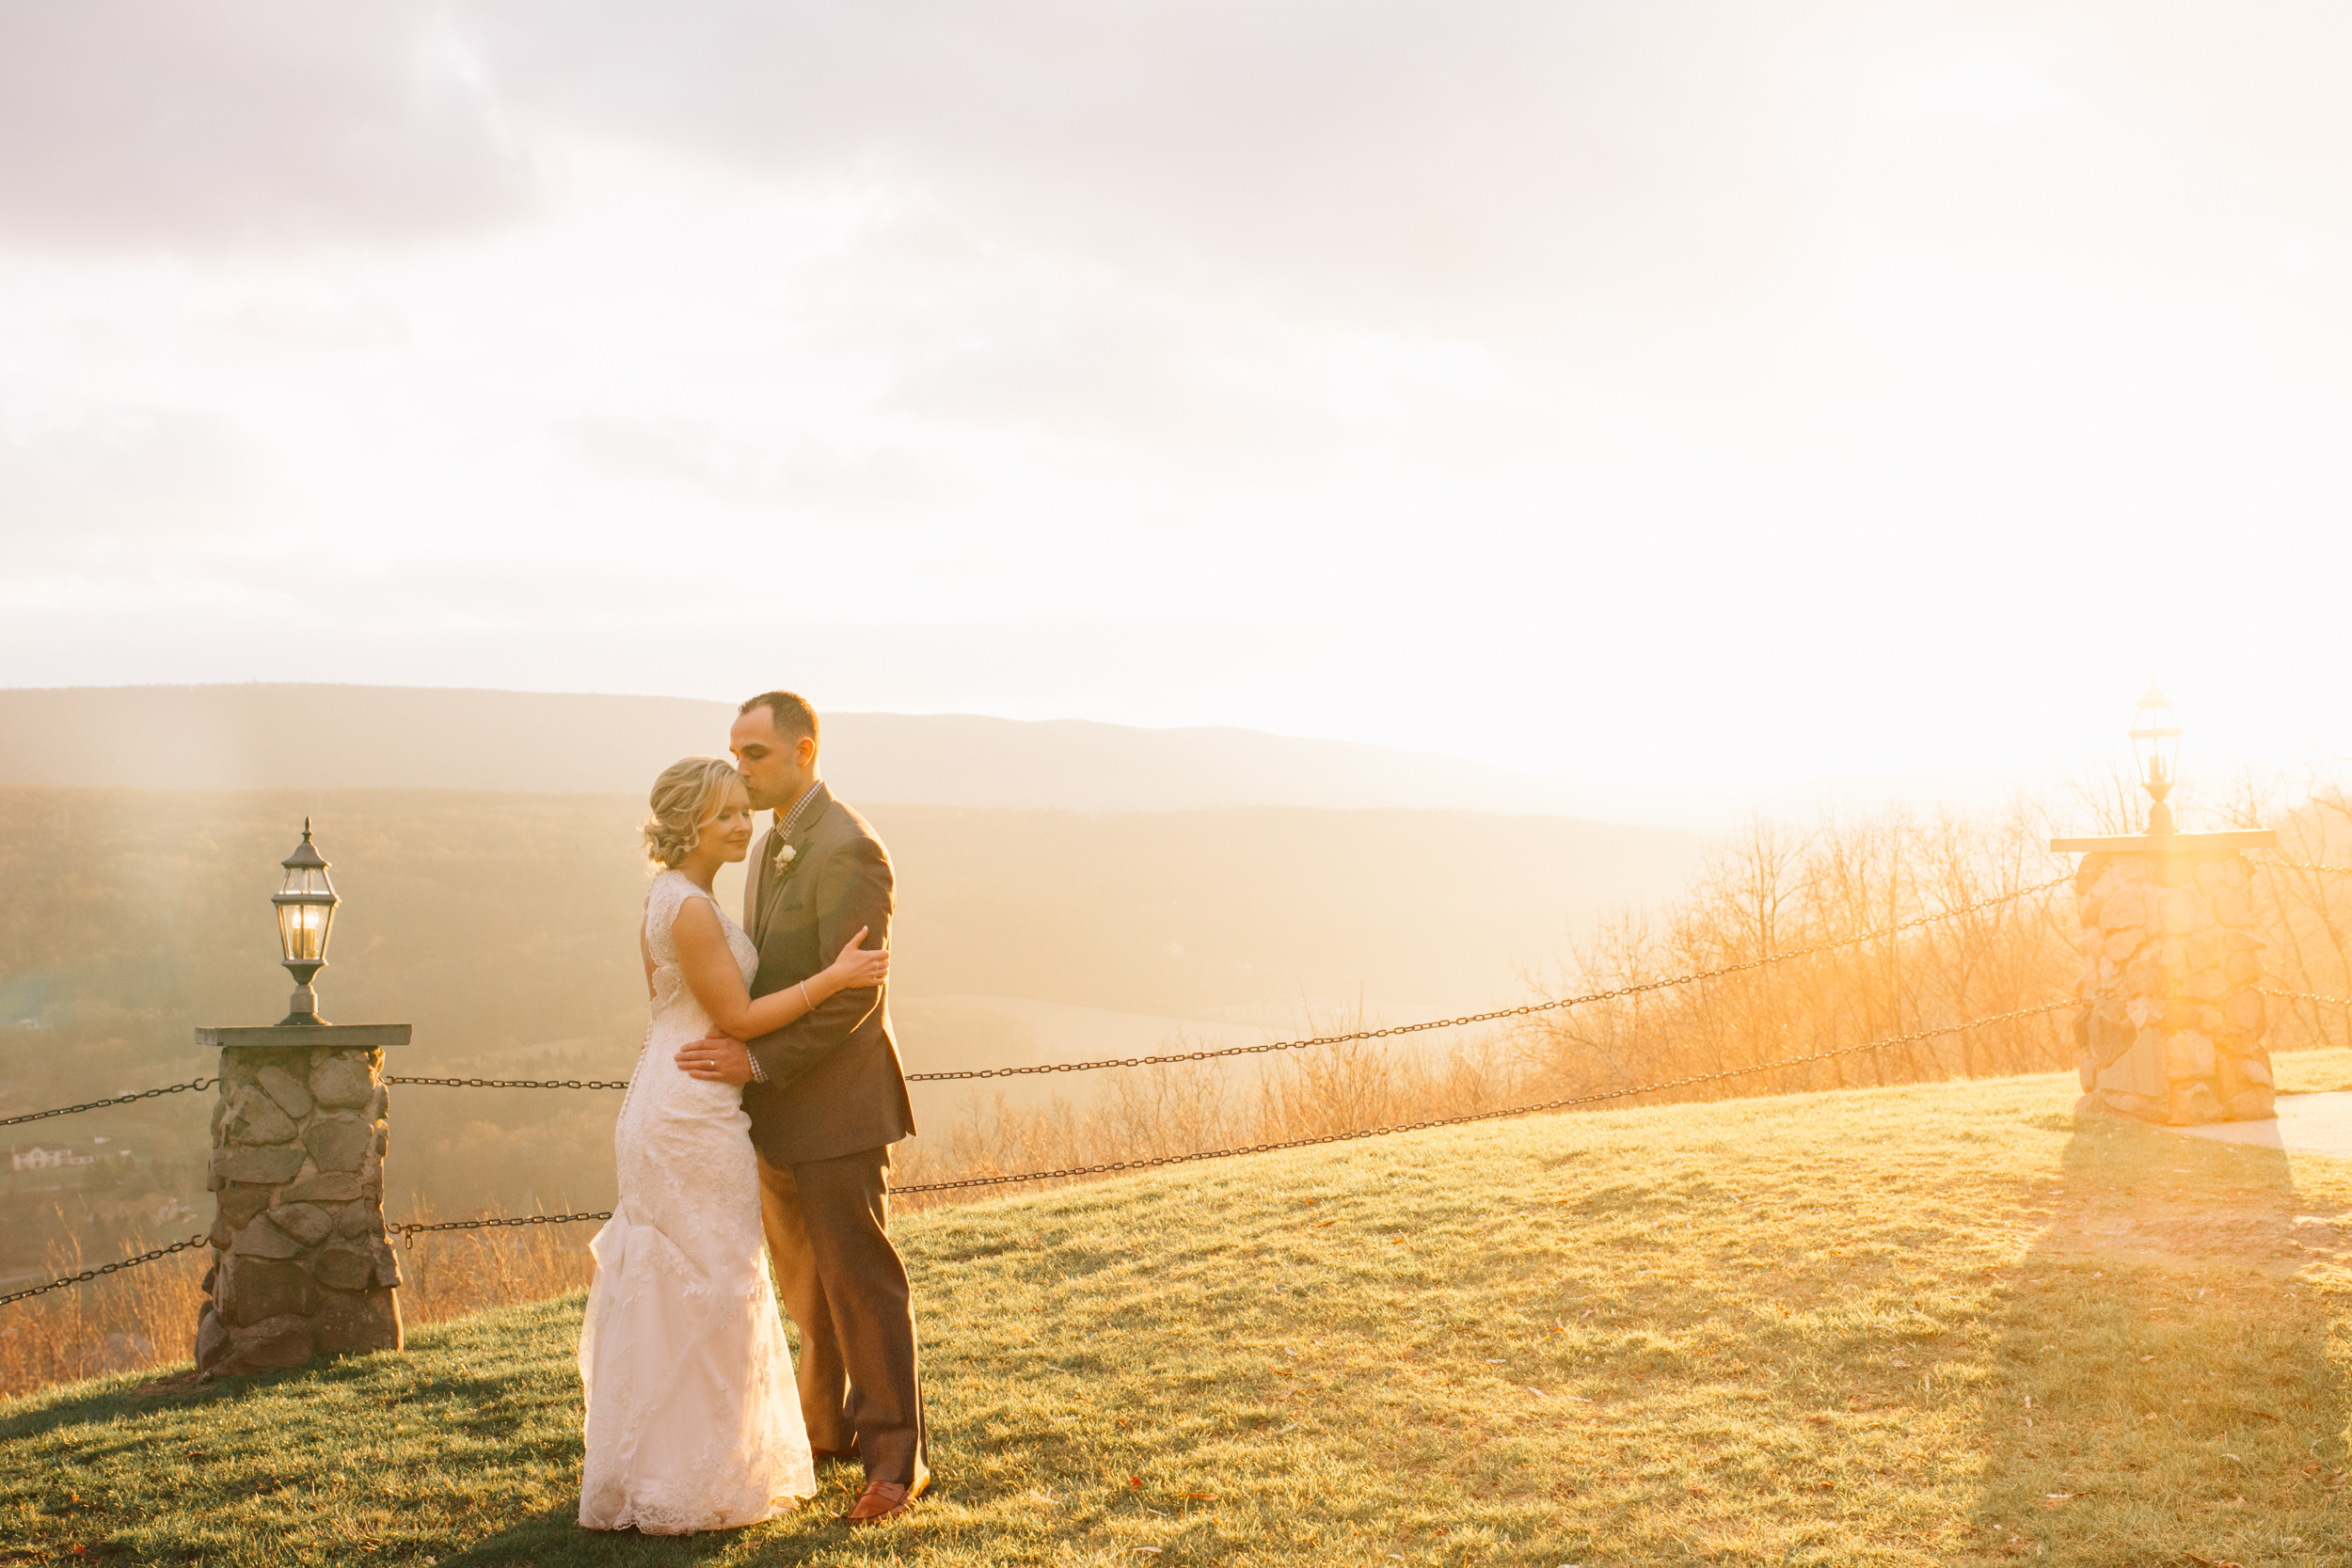 Ashley-reed-photography-pittsburgh-wedding-photographer-ashley-reed-pocconos-pa-mountain-top-wedding-98.jpg